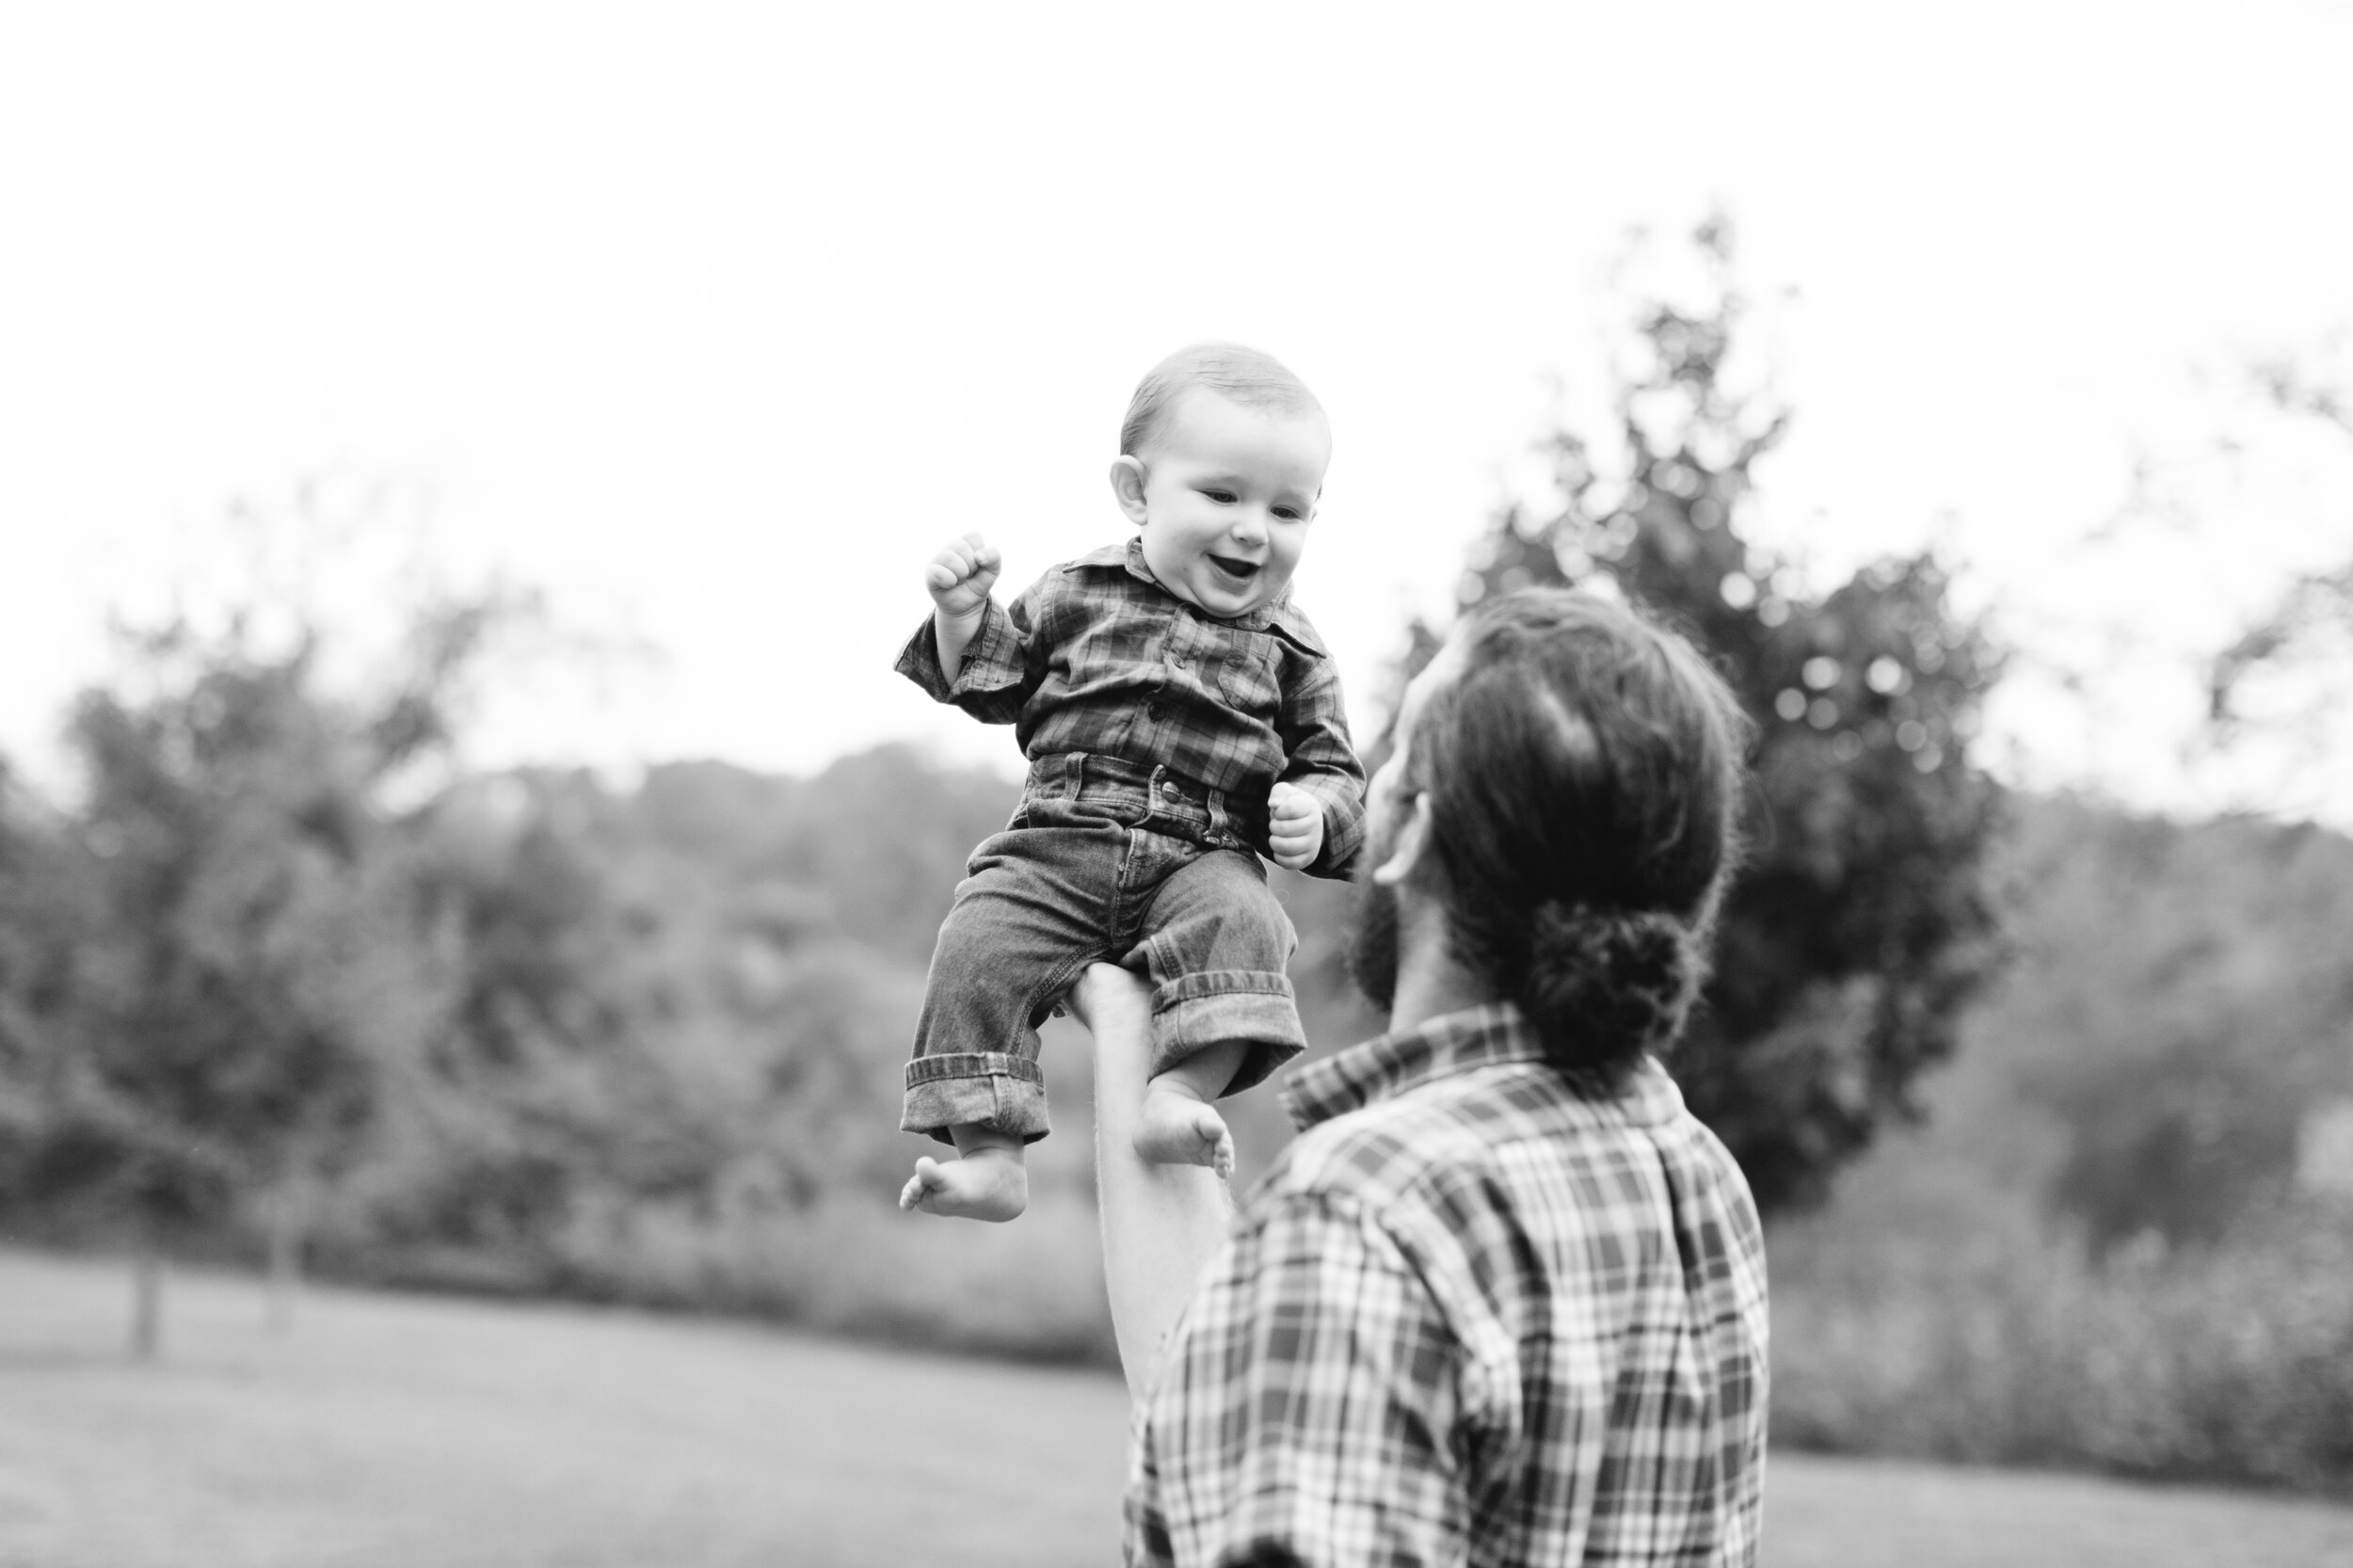 Raleigh_7months_Abigail_Malone_Photography-69.jpg